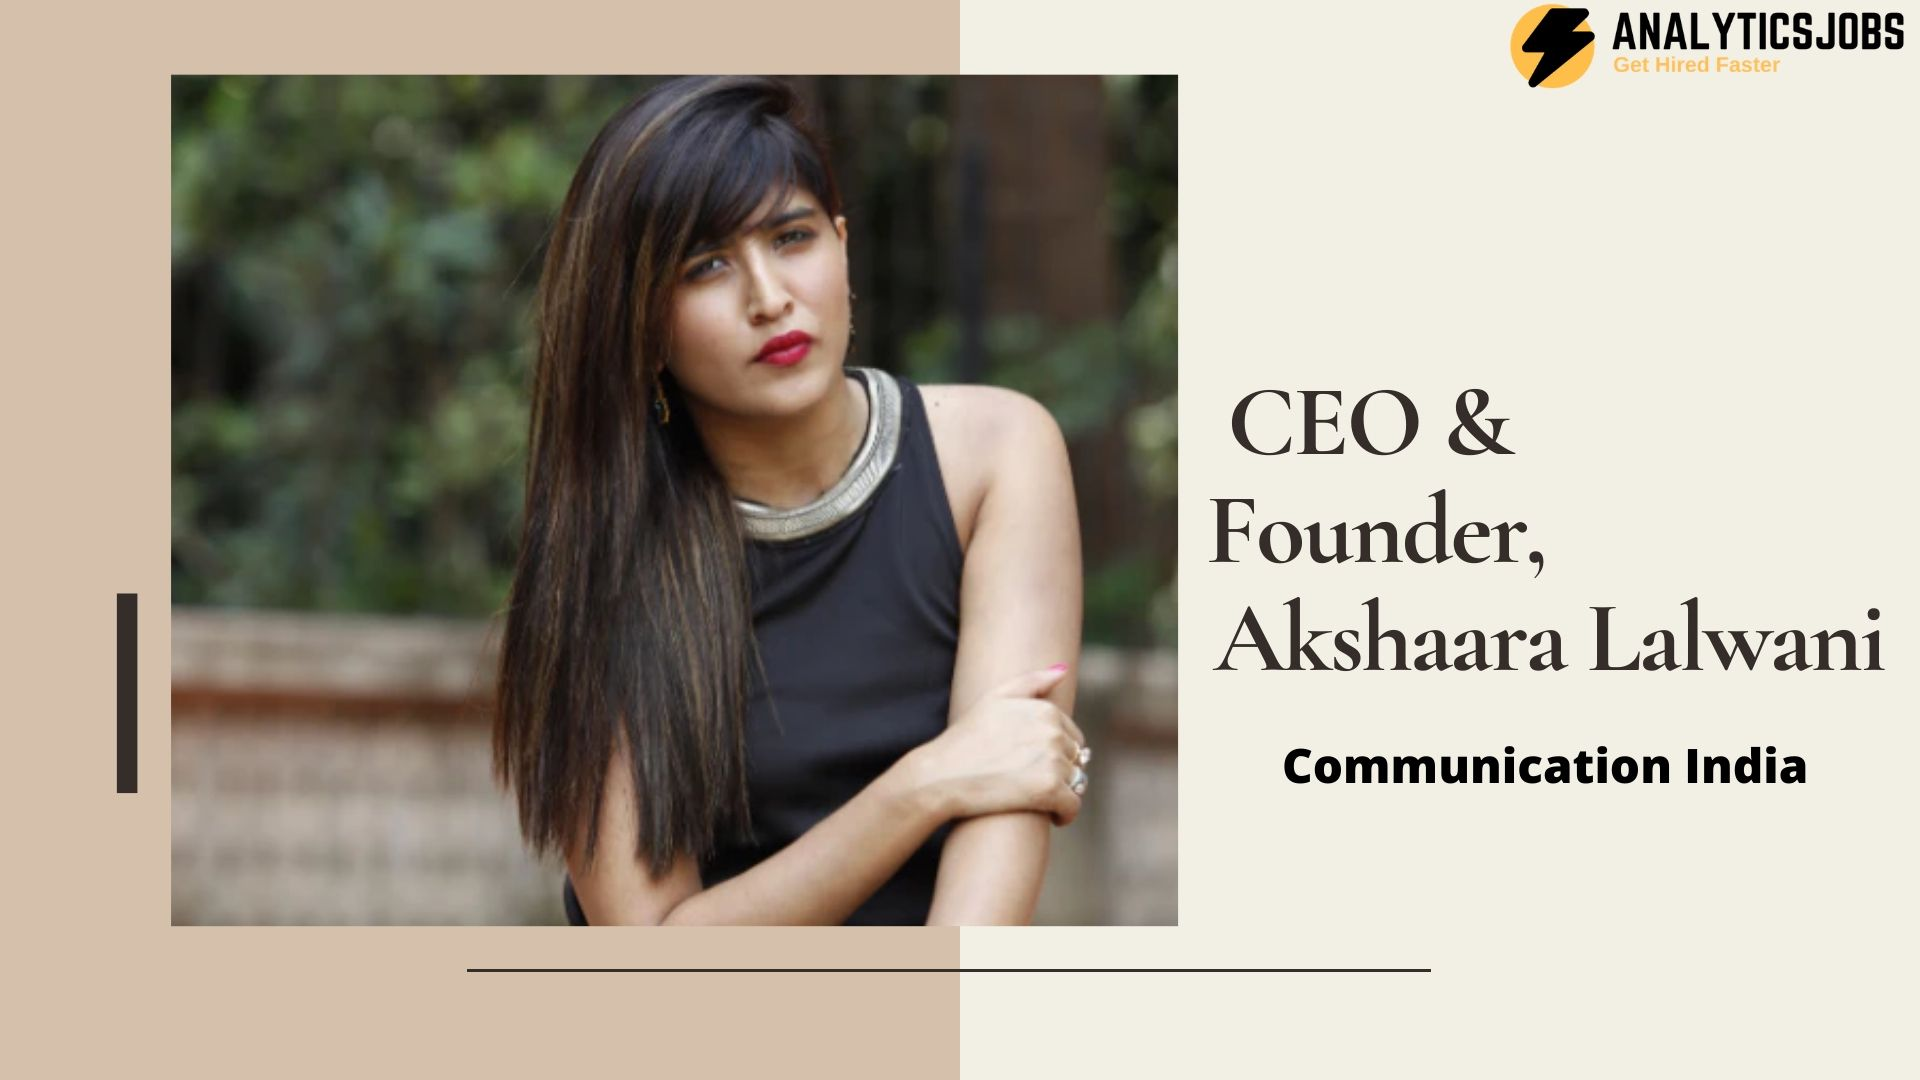 Akshaara Lalwani a women entrepreneur who started from scratch, now runs a company with over 100 employees and several renowned clients